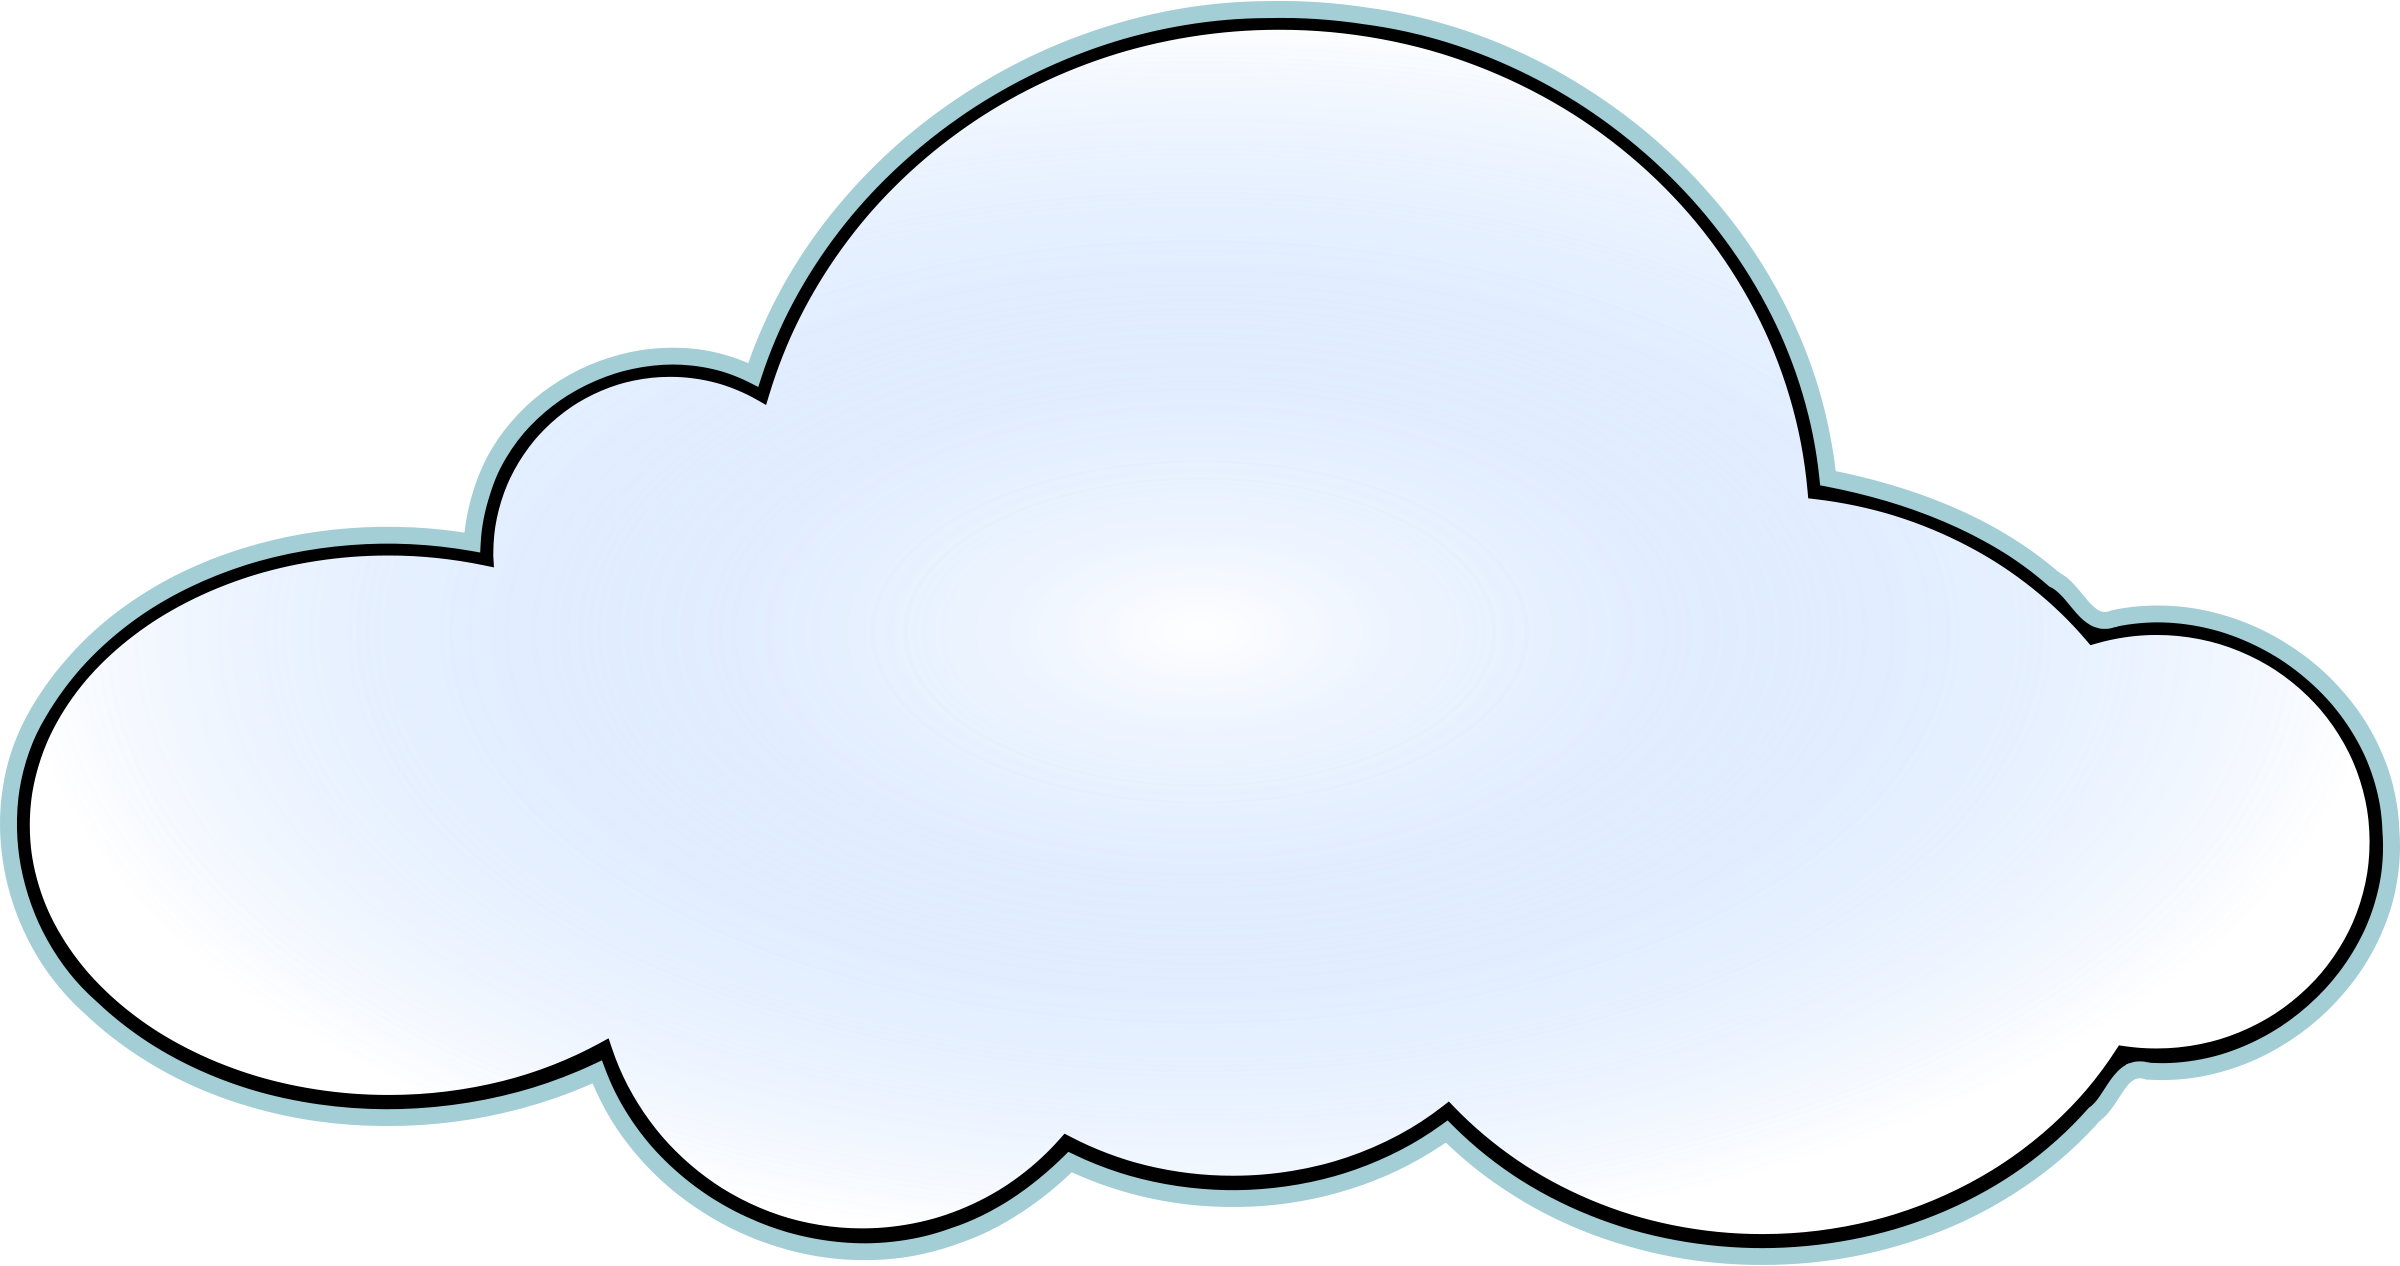 Wednesday clipart rainy. Cloud panda free images